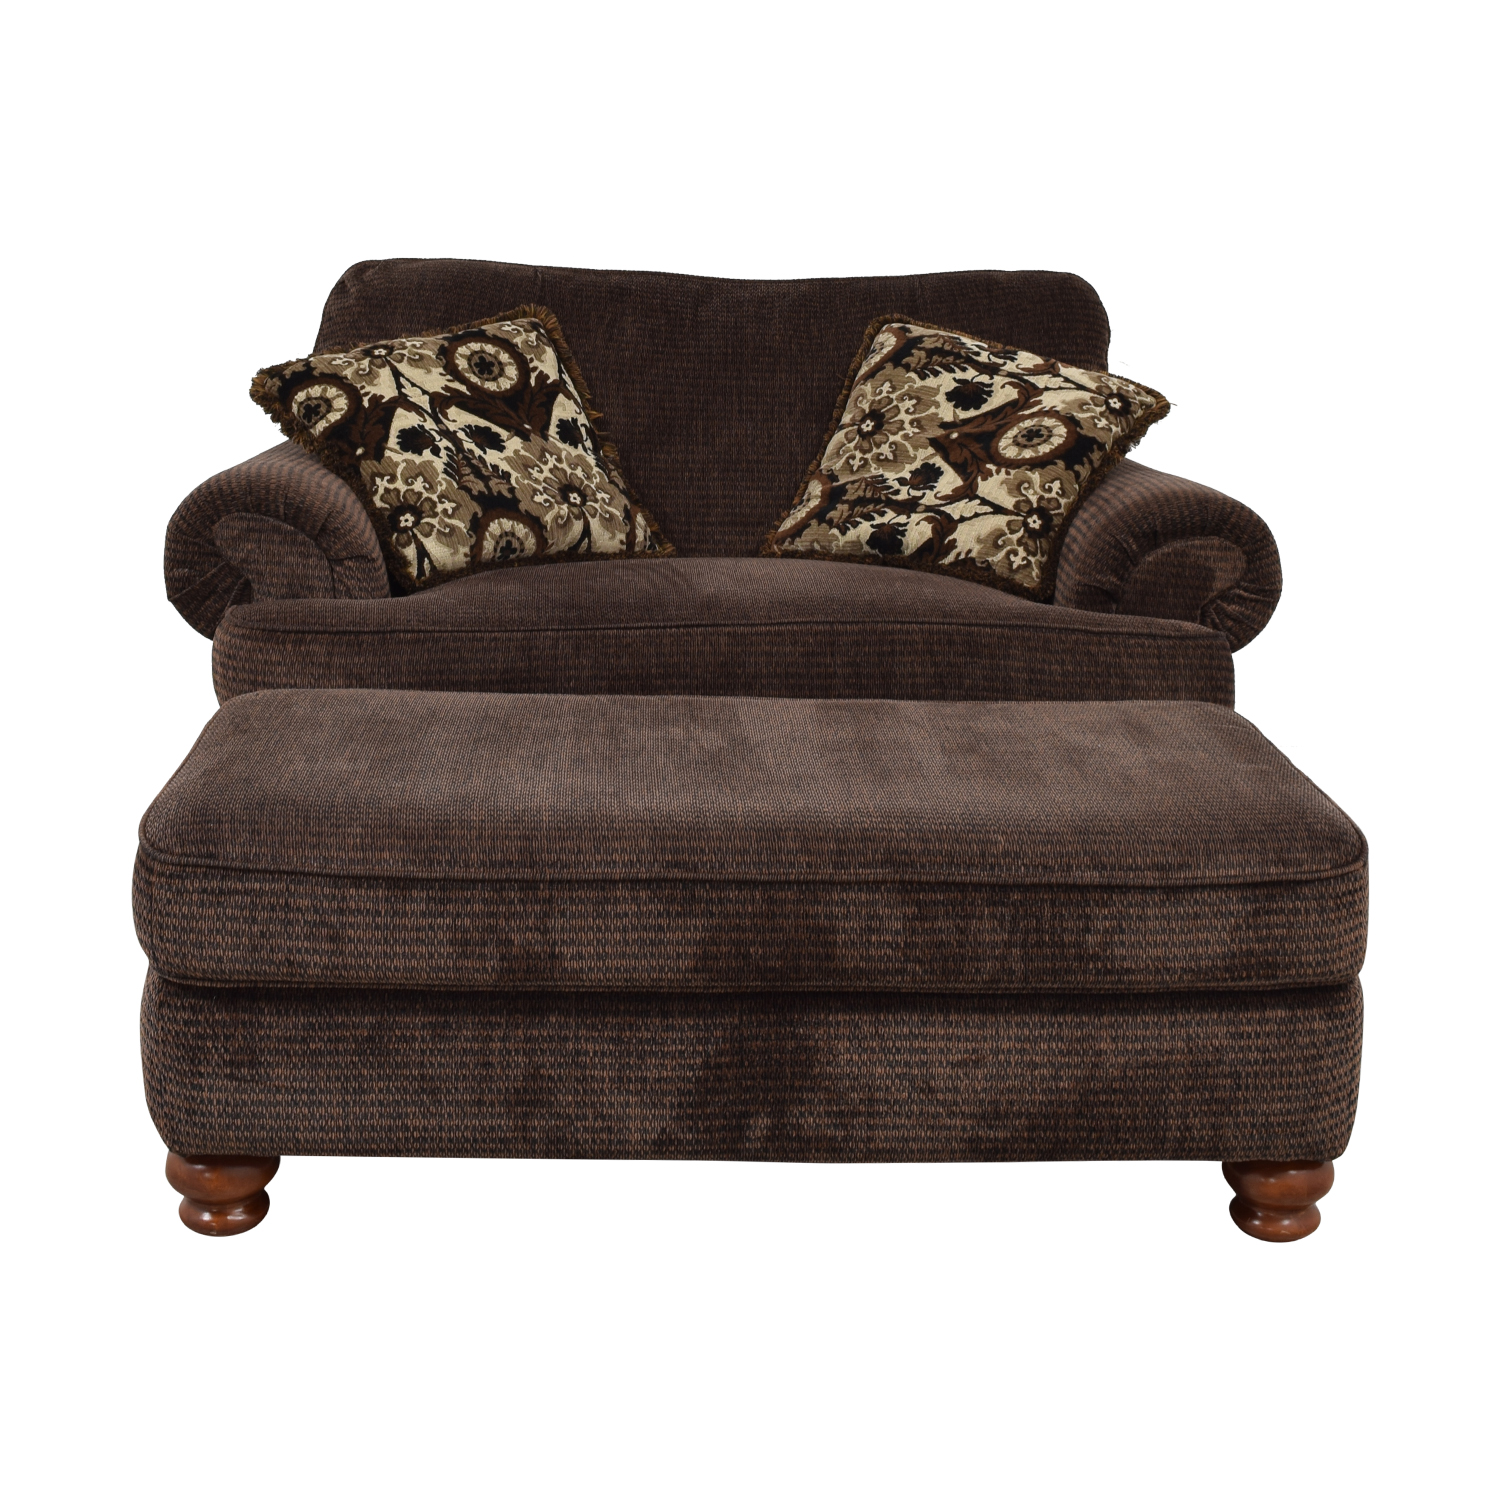 Buy Jackson Furniture Brown Oversize Chaise And Ottoman Jackson Furniture  Chairs